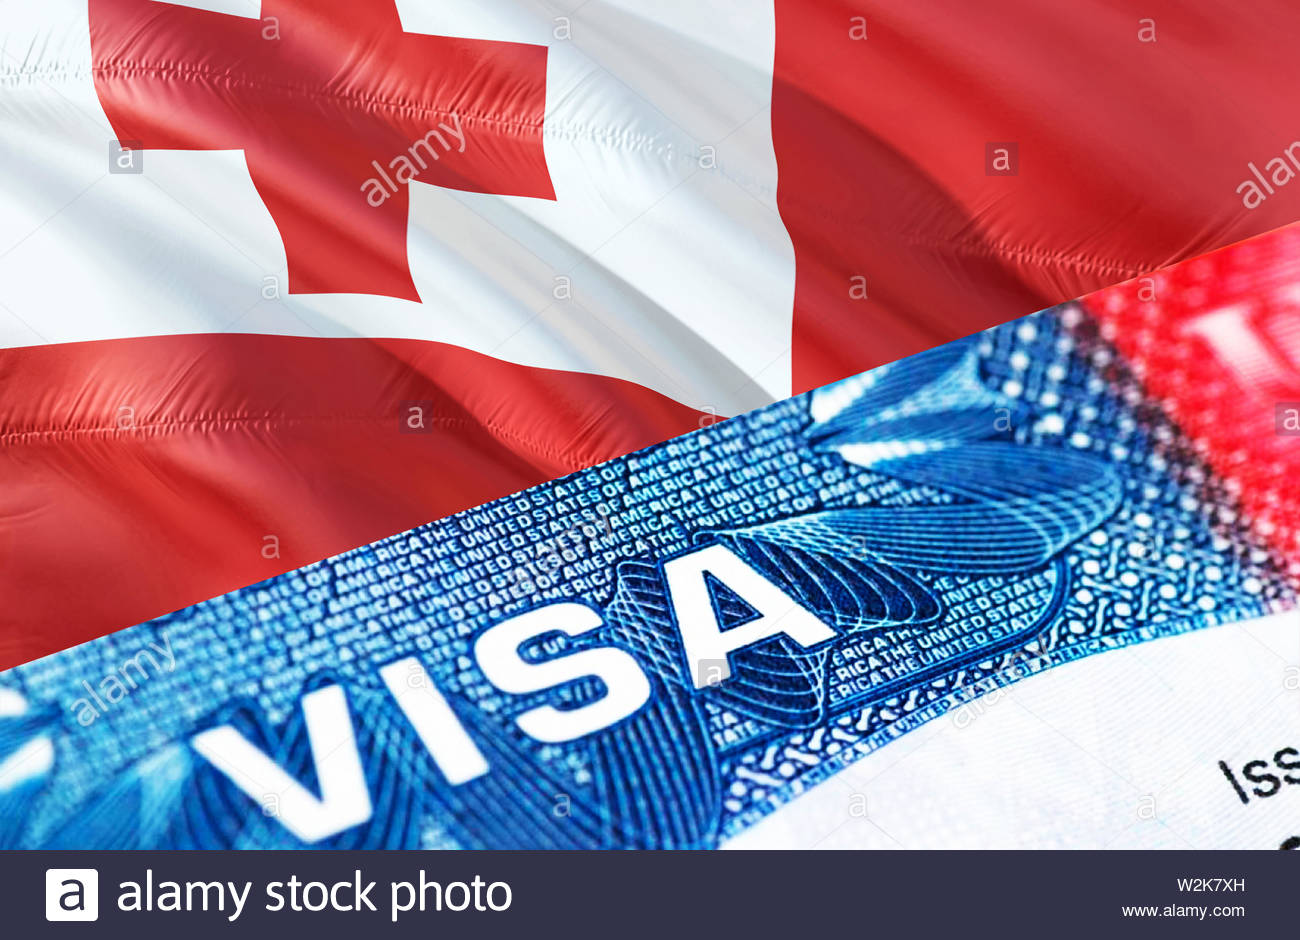 Tonga Visa Document, with Tonga flag in background, 3D